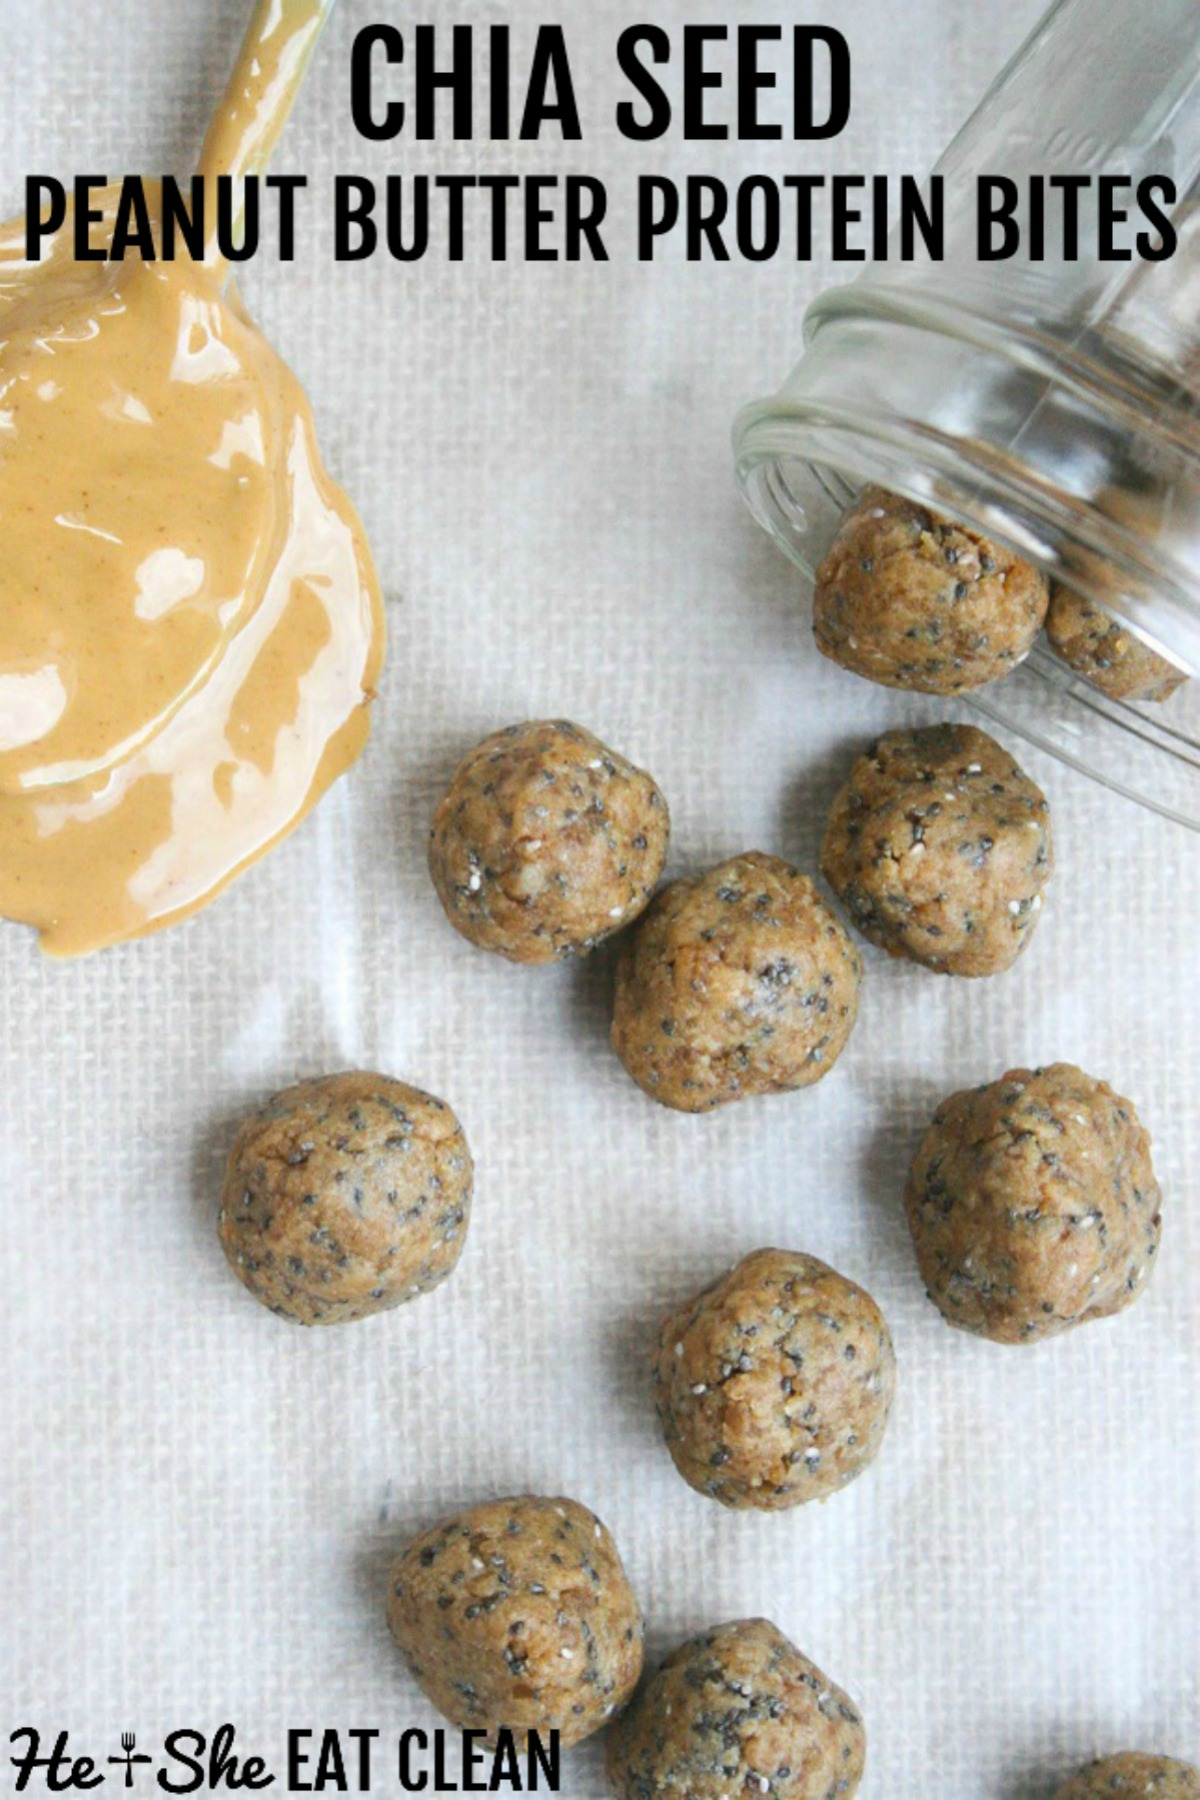 6 protein bites spilled out of a glass jar with peanut butter